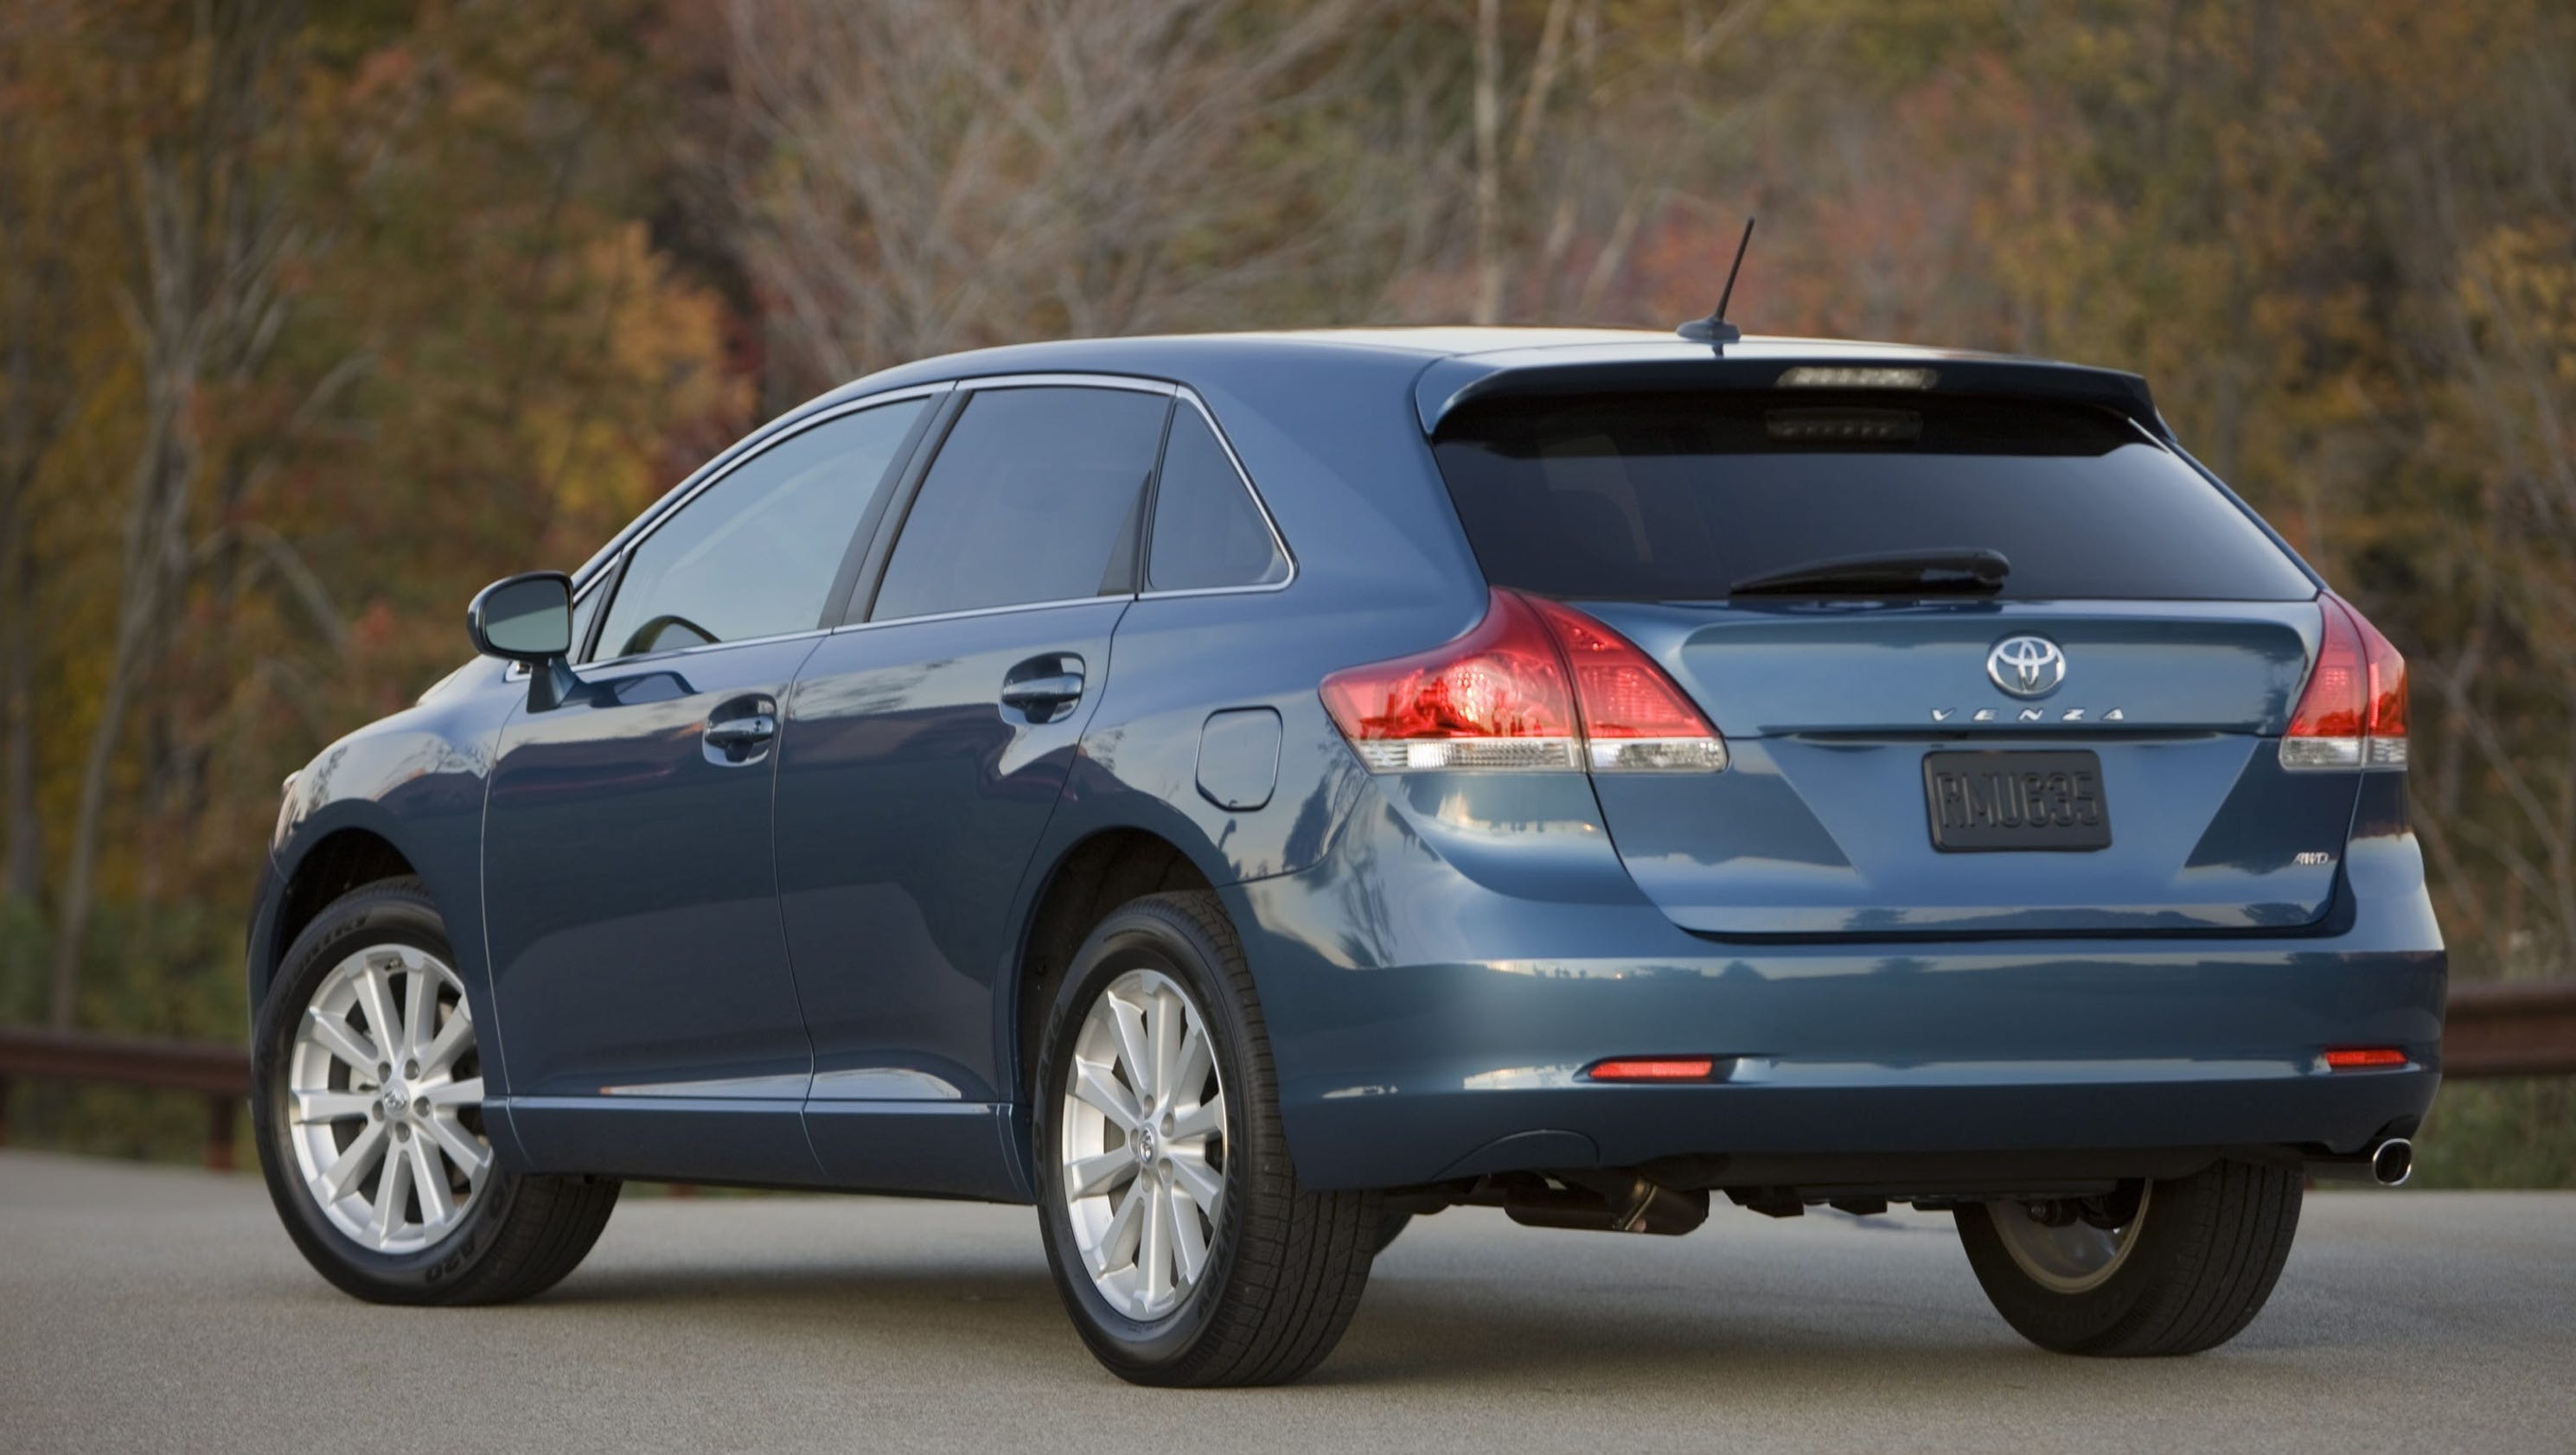 Toyota is killing off the Venza crossover